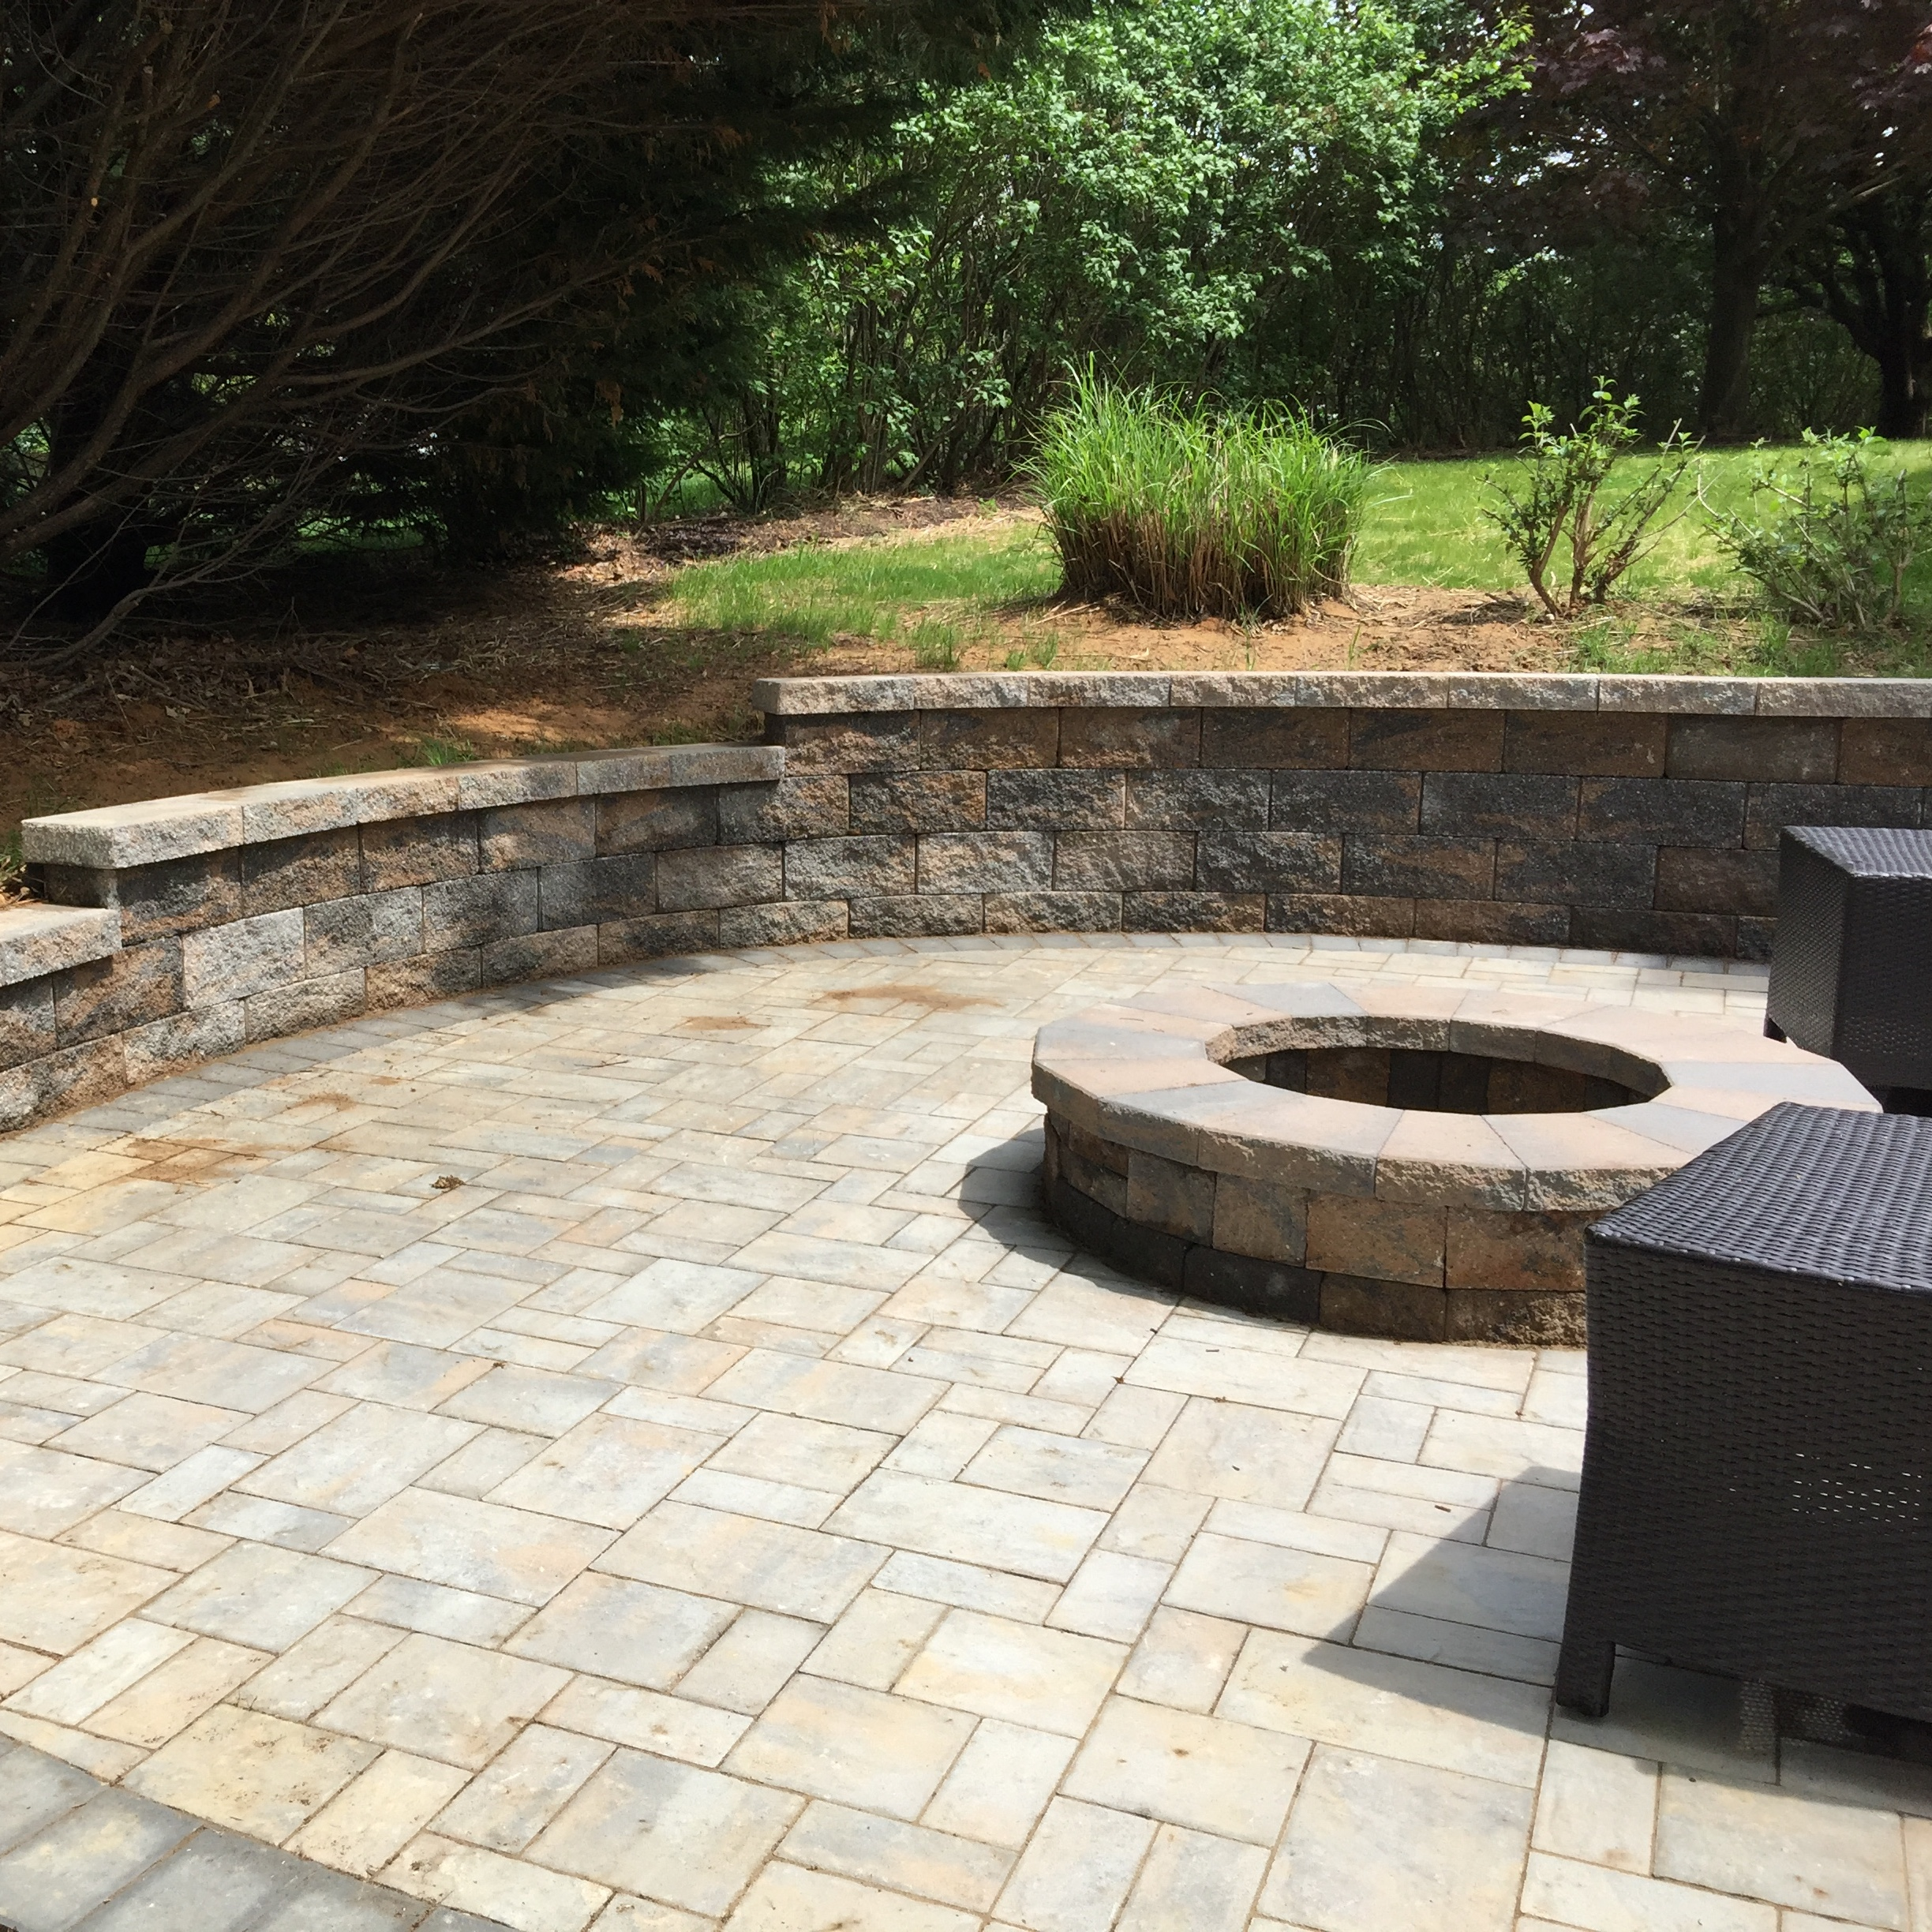 The Round Firepit House